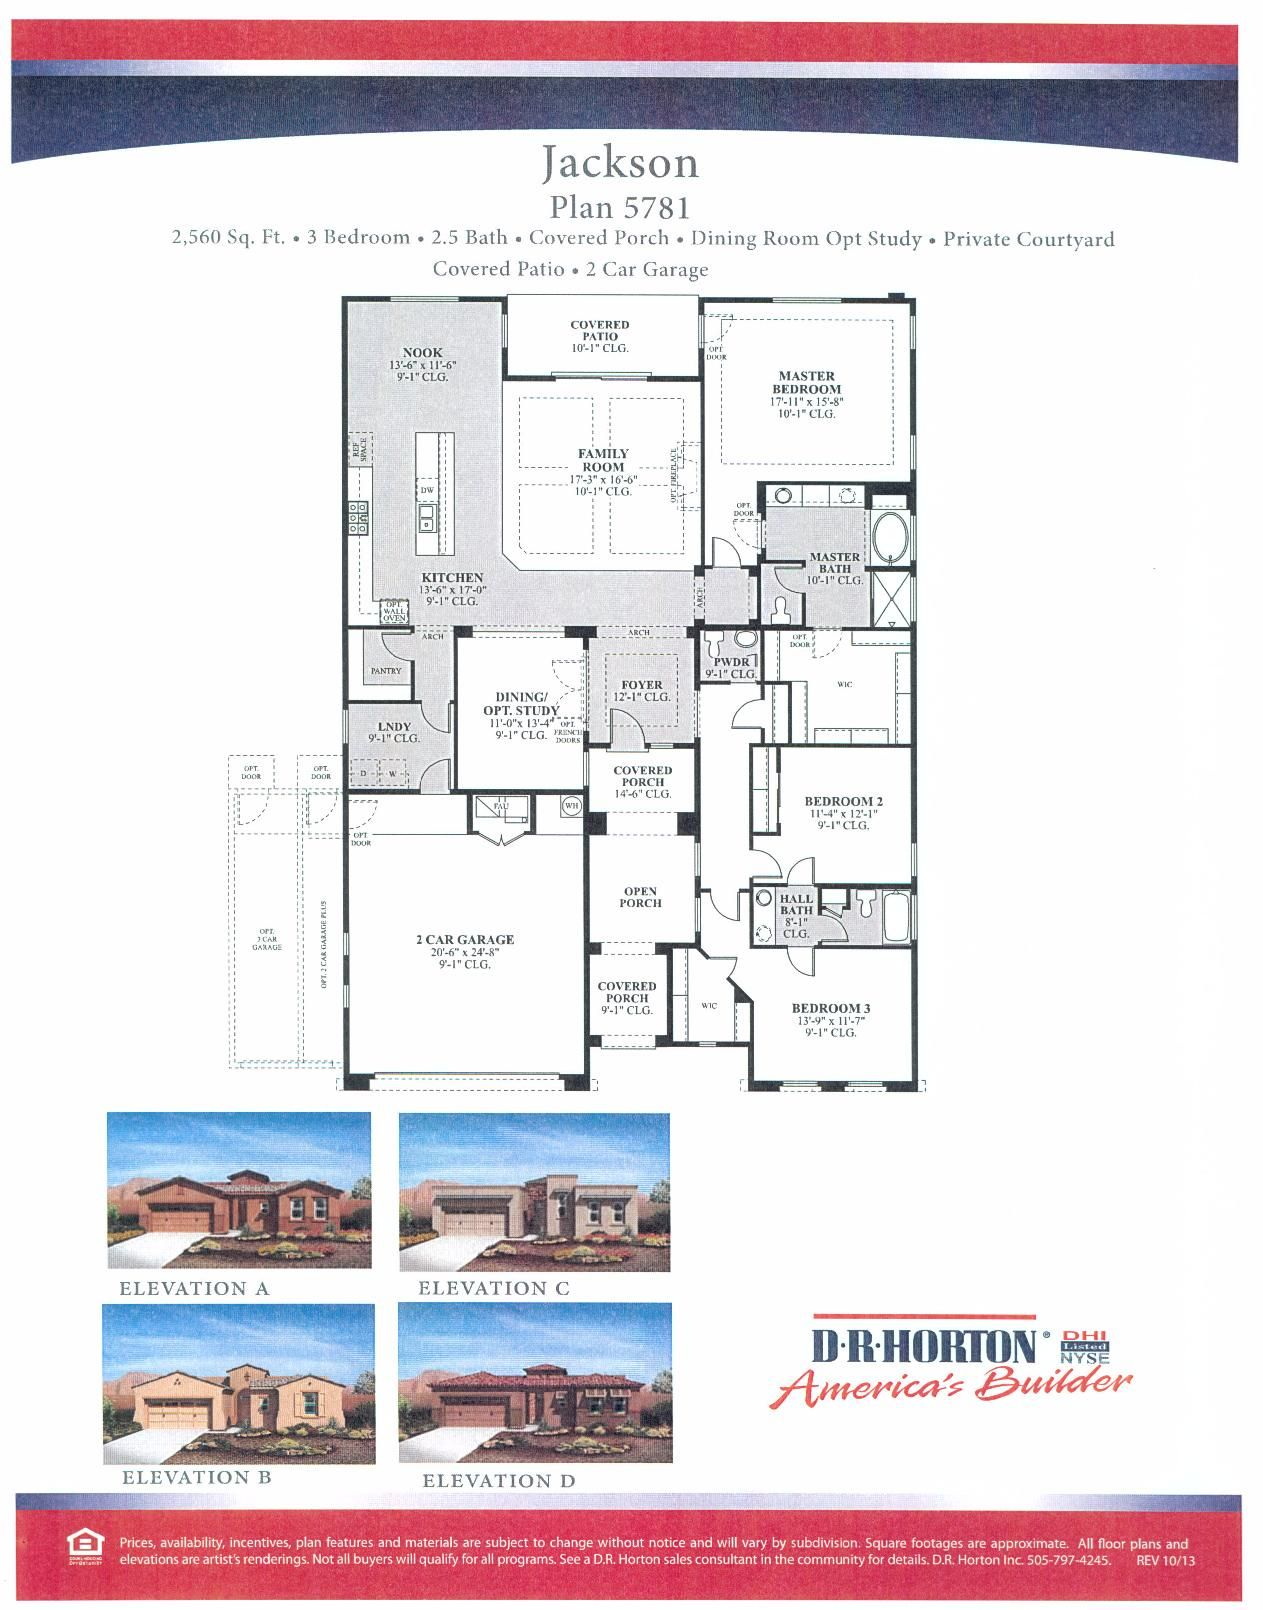 dr horton jackson floor plan dr horton floor plans pinterest real estate dr horton jackson floor plan